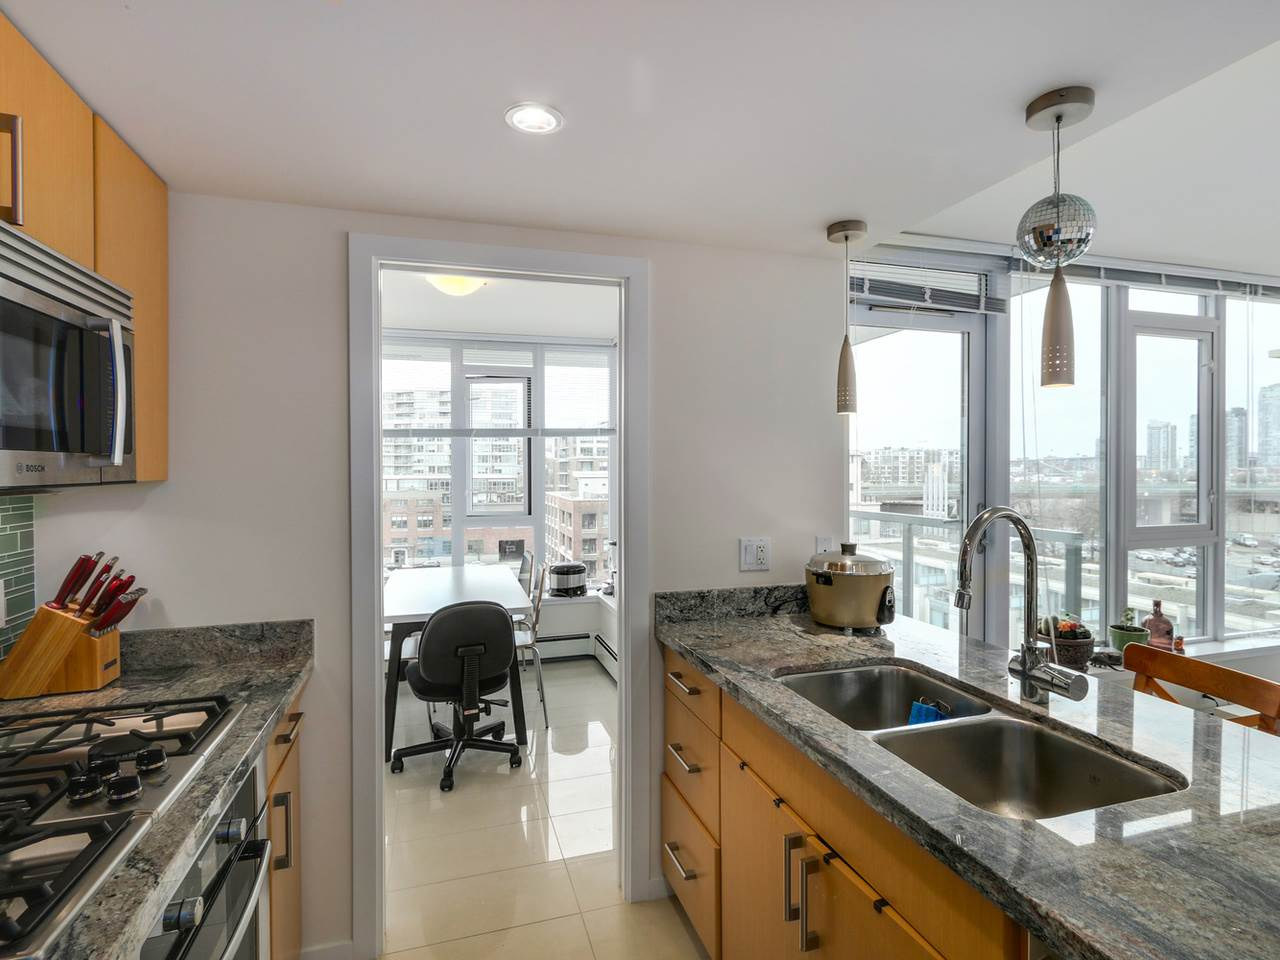 "Photo 8: 802 1887 CROWE Street in Vancouver: False Creek Condo for sale in ""PINNACLE ON FALSE CREEK"" (Vancouver West)  : MLS® # R2044450"